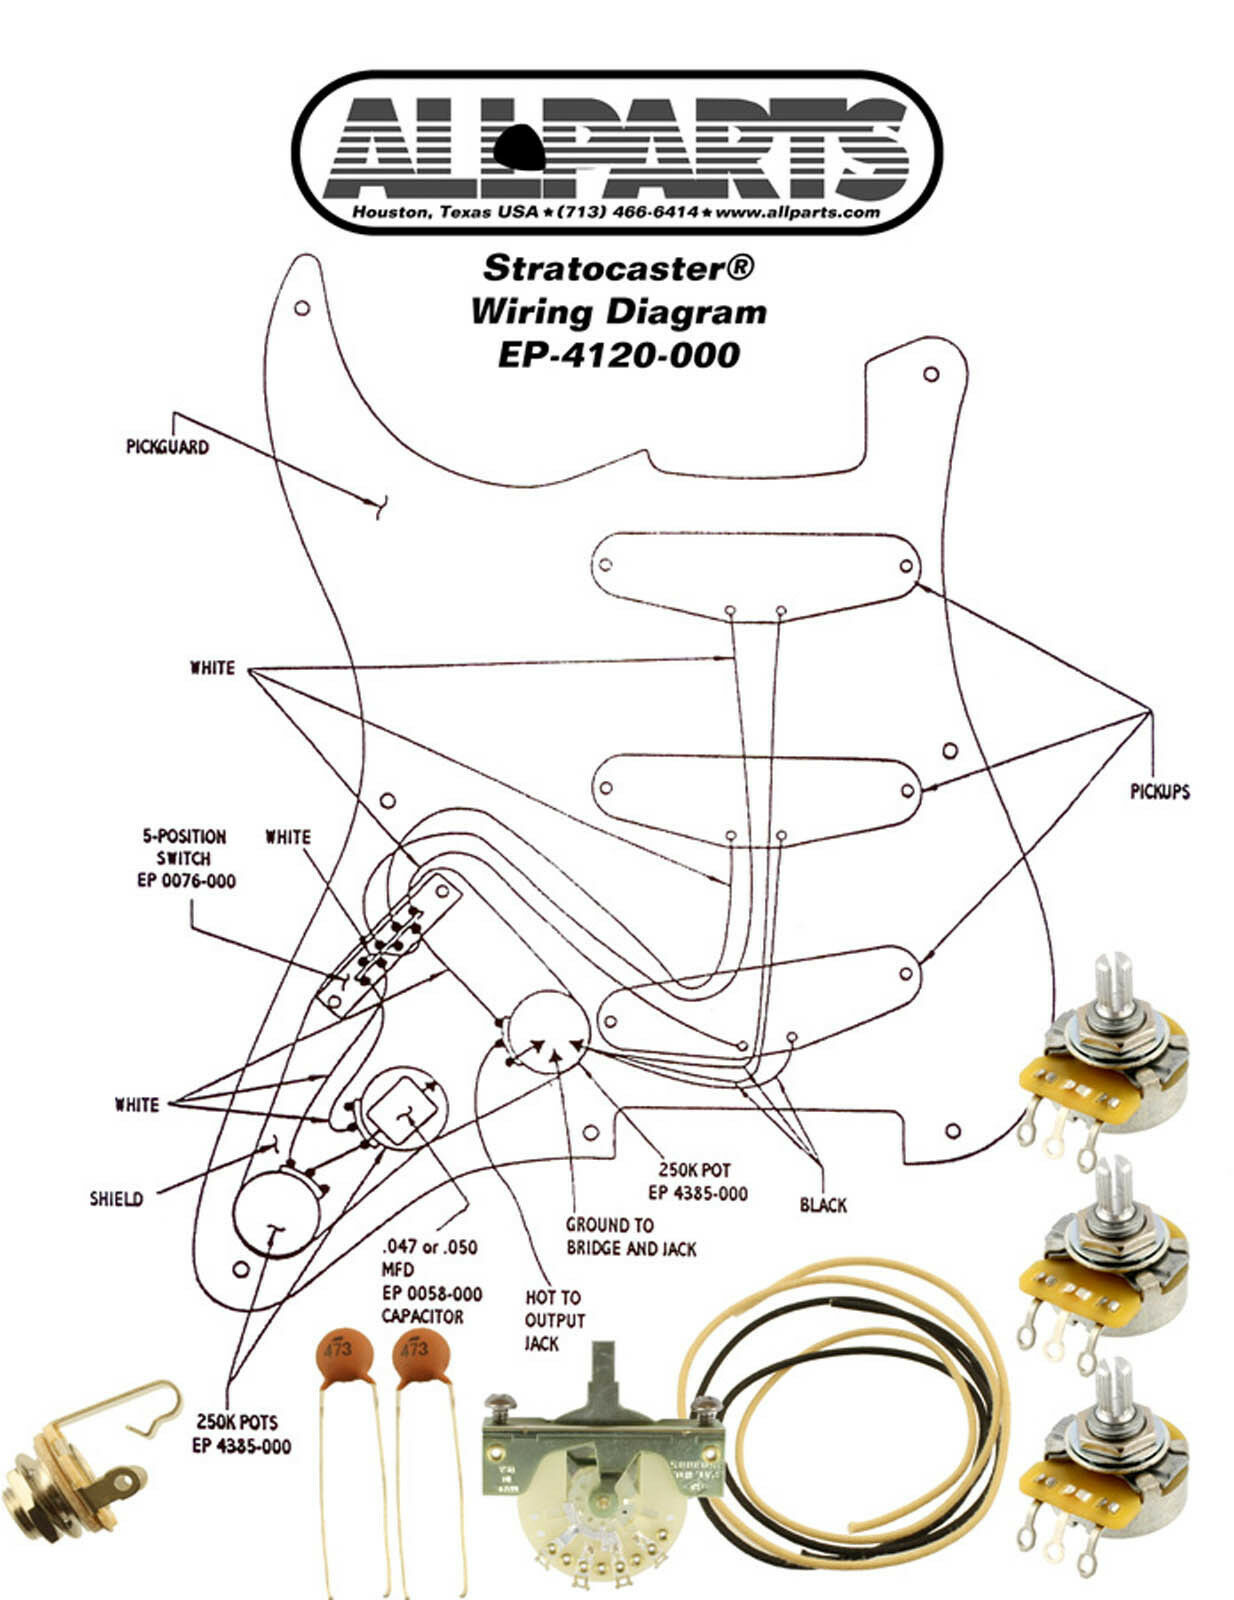 Fender Wiring Kits Detailed Schematics Diagram Guitar Diagrams Kit Stratocaster Strat Complete With Schematic